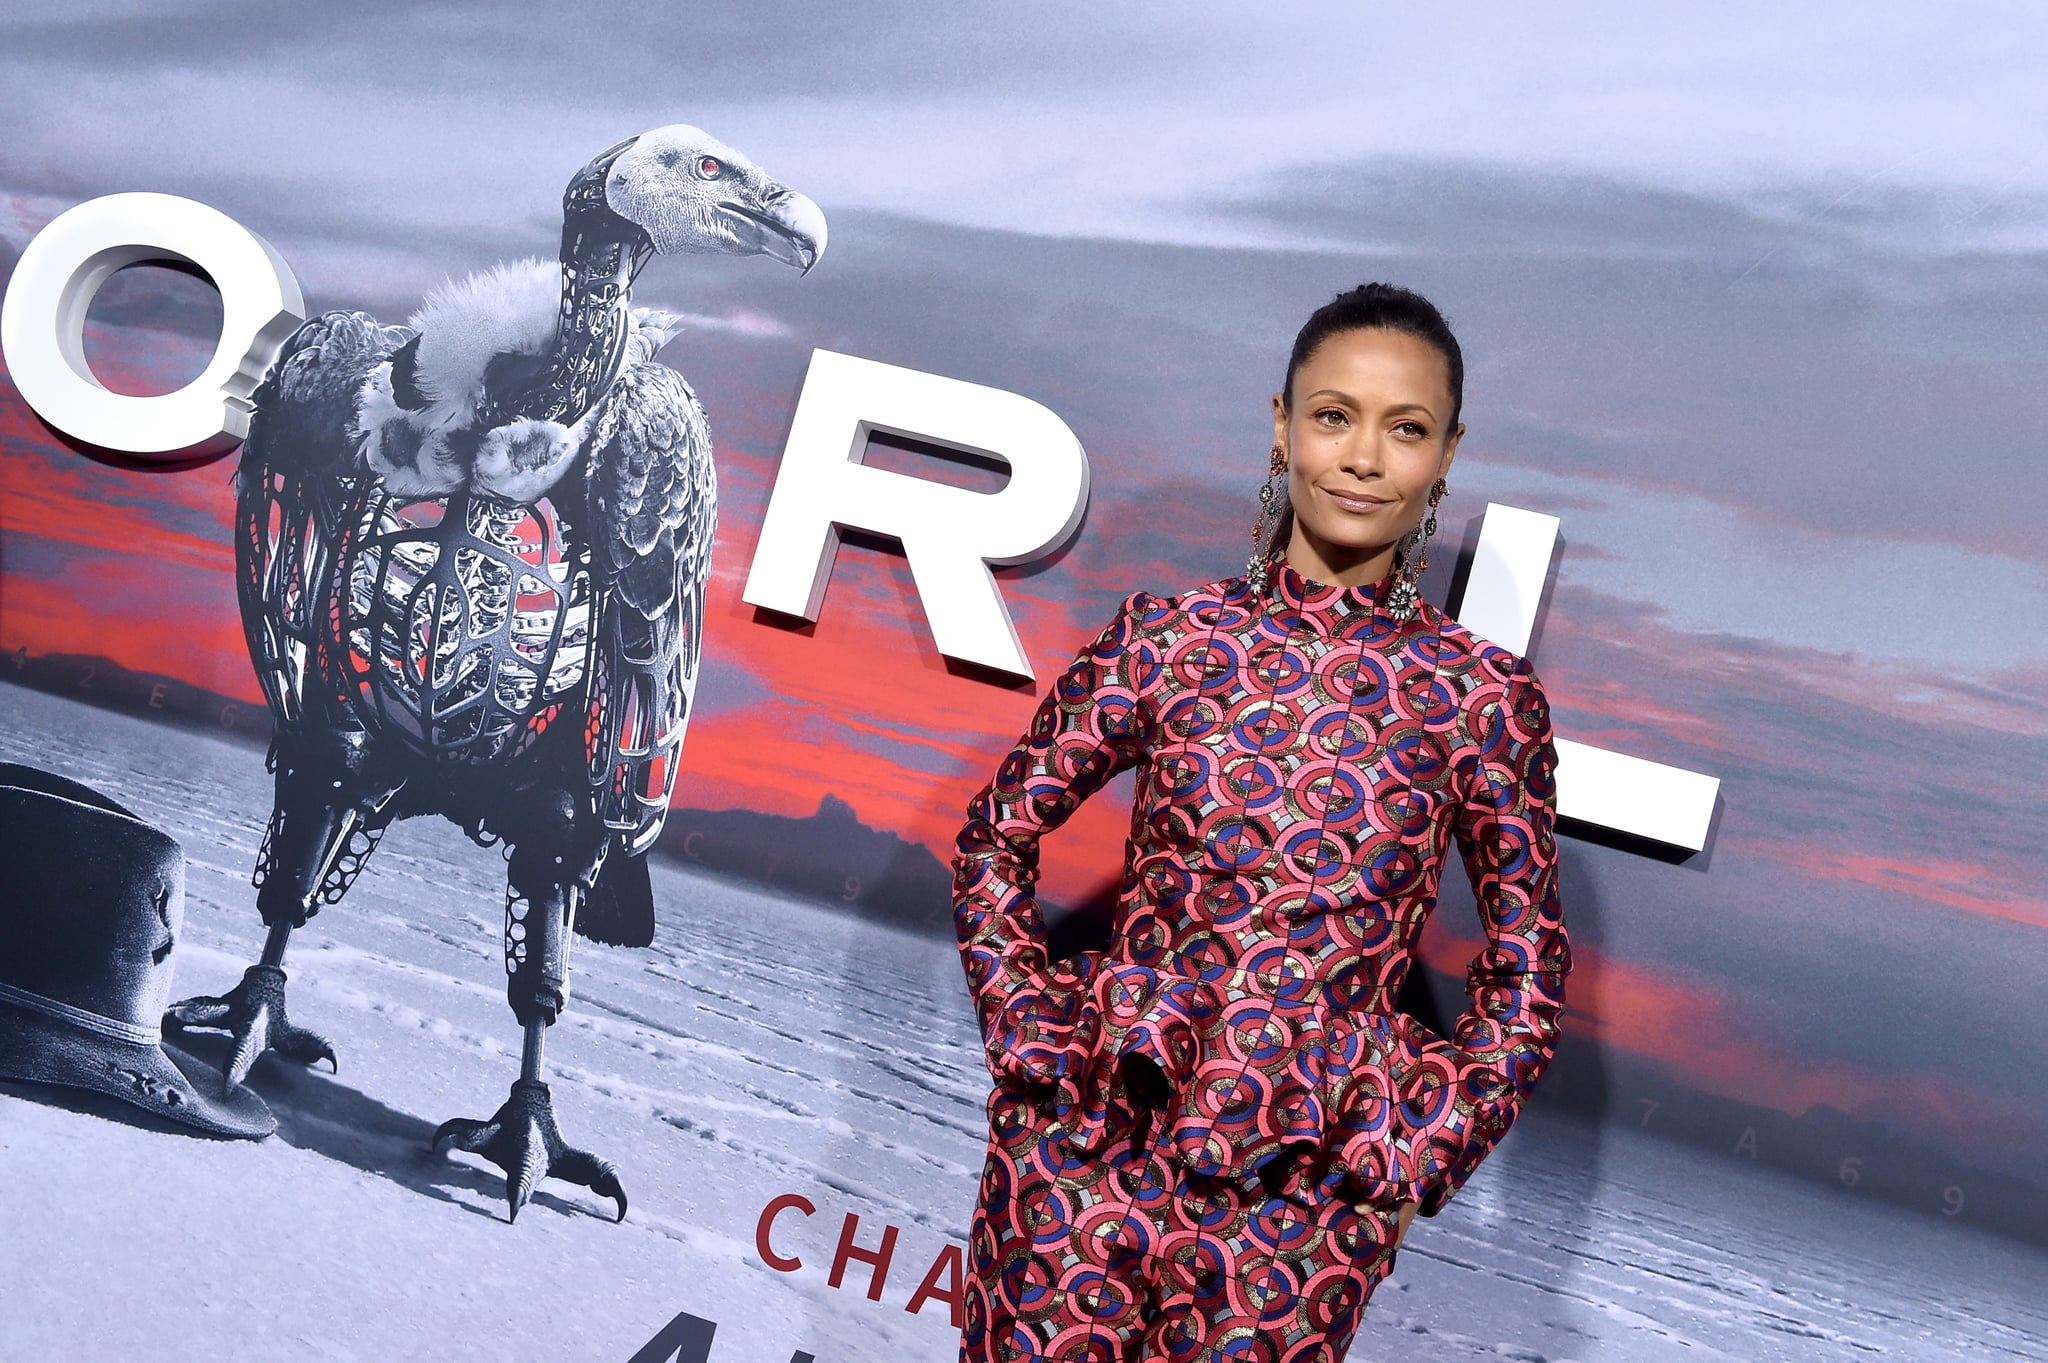 LOS ANGELES, CA - APRIL 16:  Actress Thandie Newton arrives at the Los Angeles premiere of HBO's 'Westworld' season 2 at The Cinerama Dome on April 16, 2018 in Los Angeles, California.  (Photo by Axelle/Bauer-Griffin/FilmMagic)